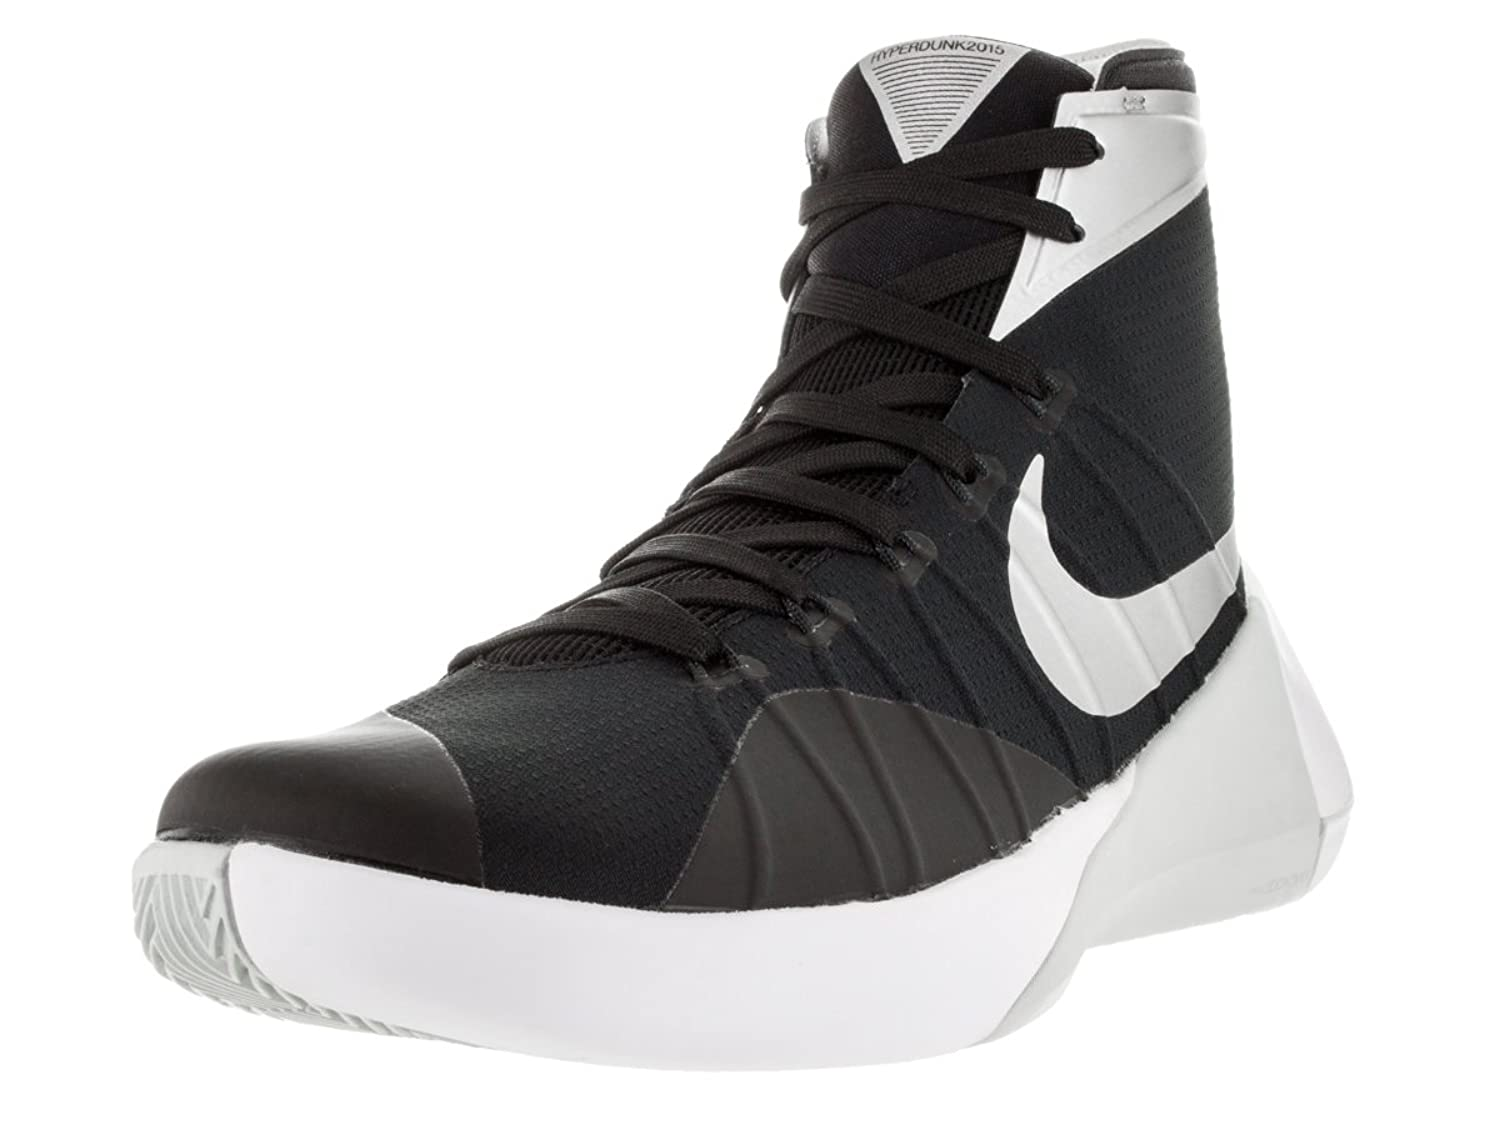 Nike Mens Hyperdunk 2015 Basketball Shoes